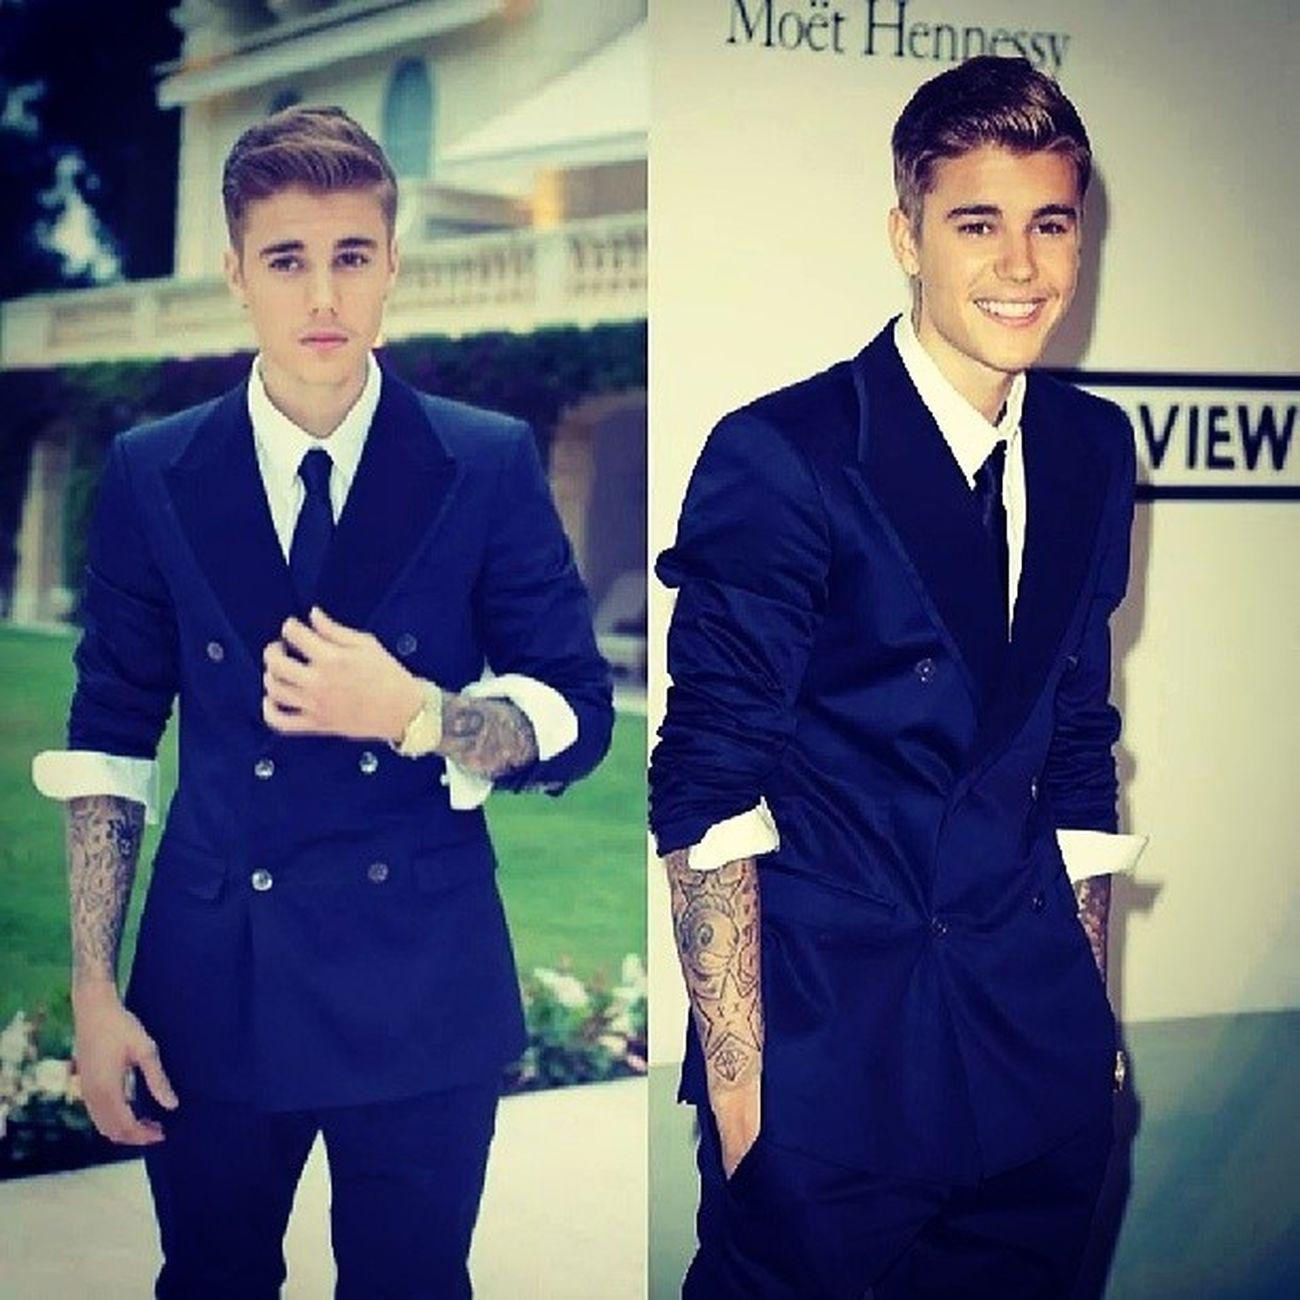 *-* Perfect Sirbieebs Sirbizzle Justin bieber swag handsome perfection beautiful teamo kidrauhl belieber <3